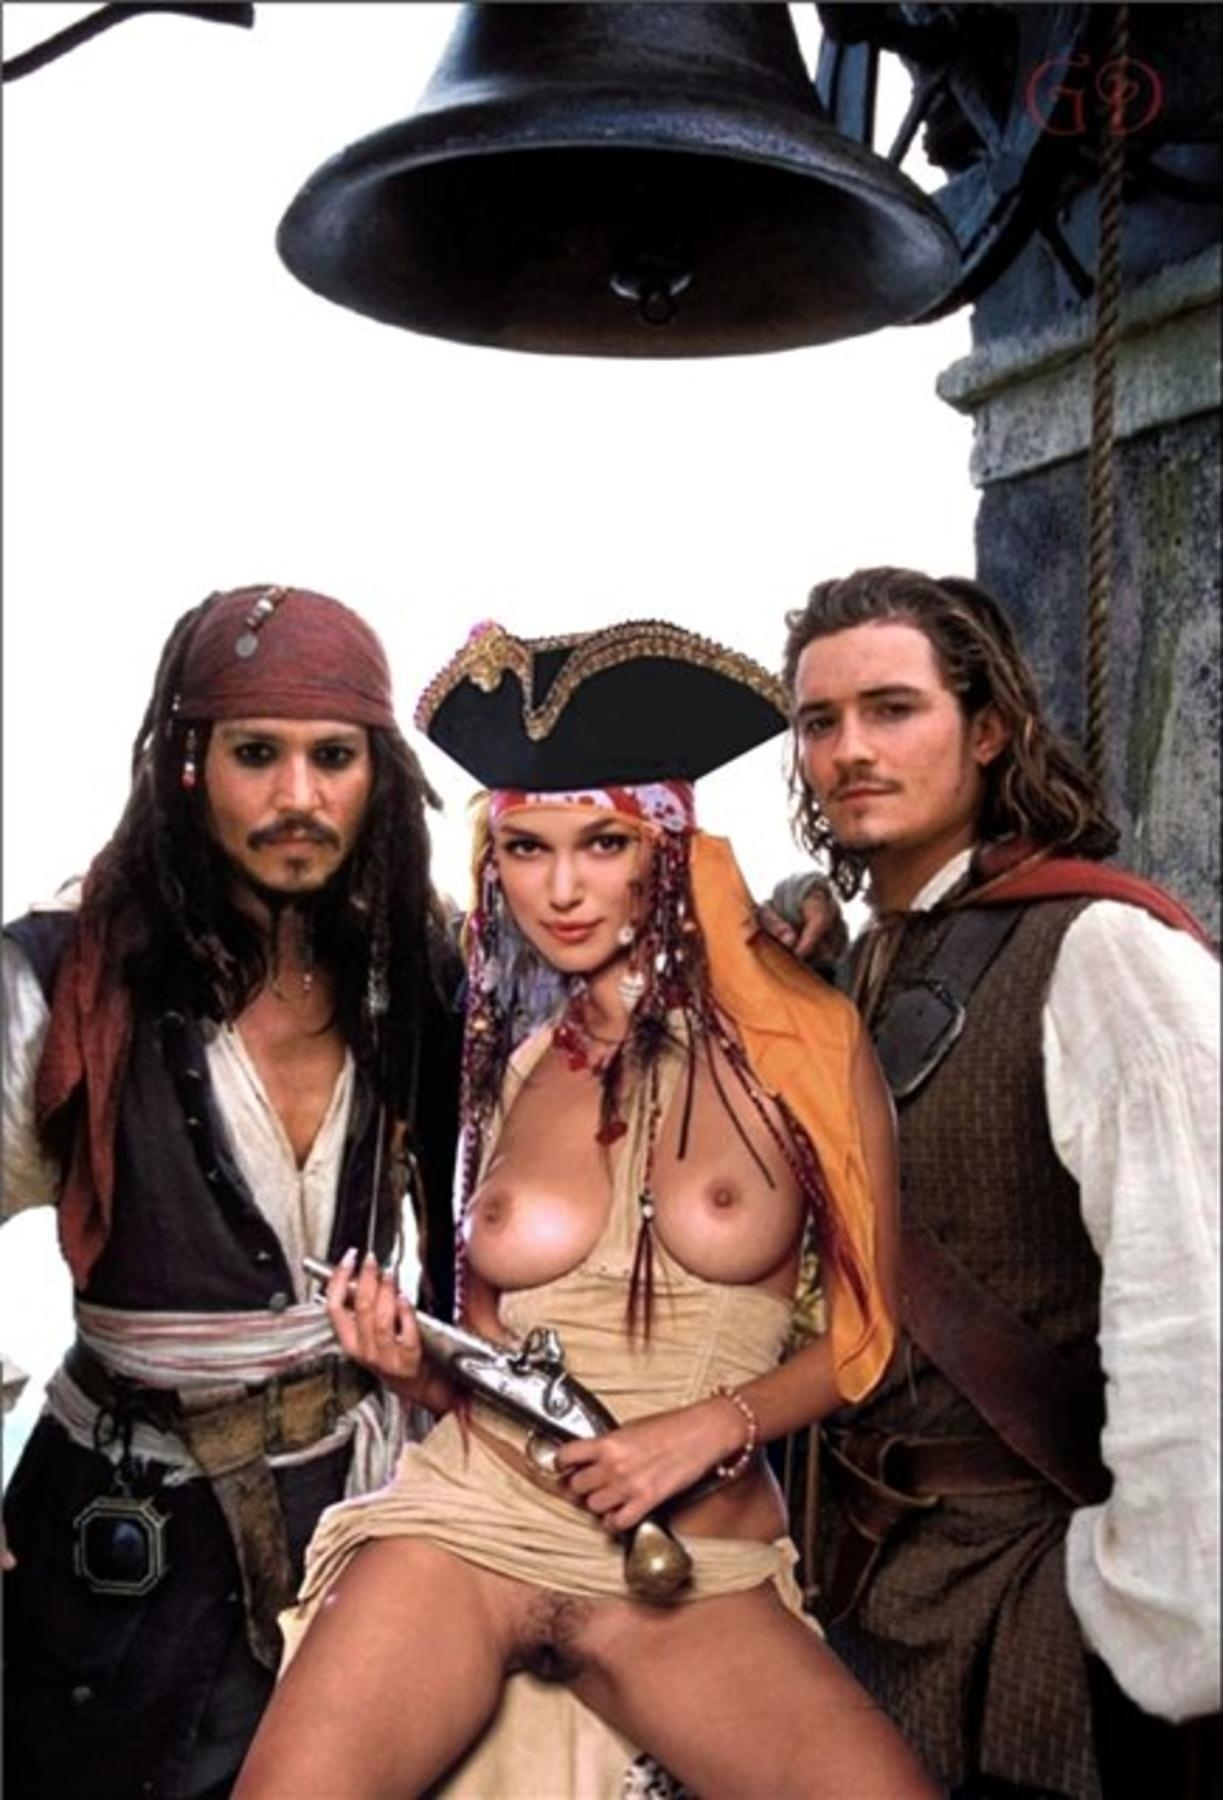 Pirates of the caribbean porn sex movie sexual pics